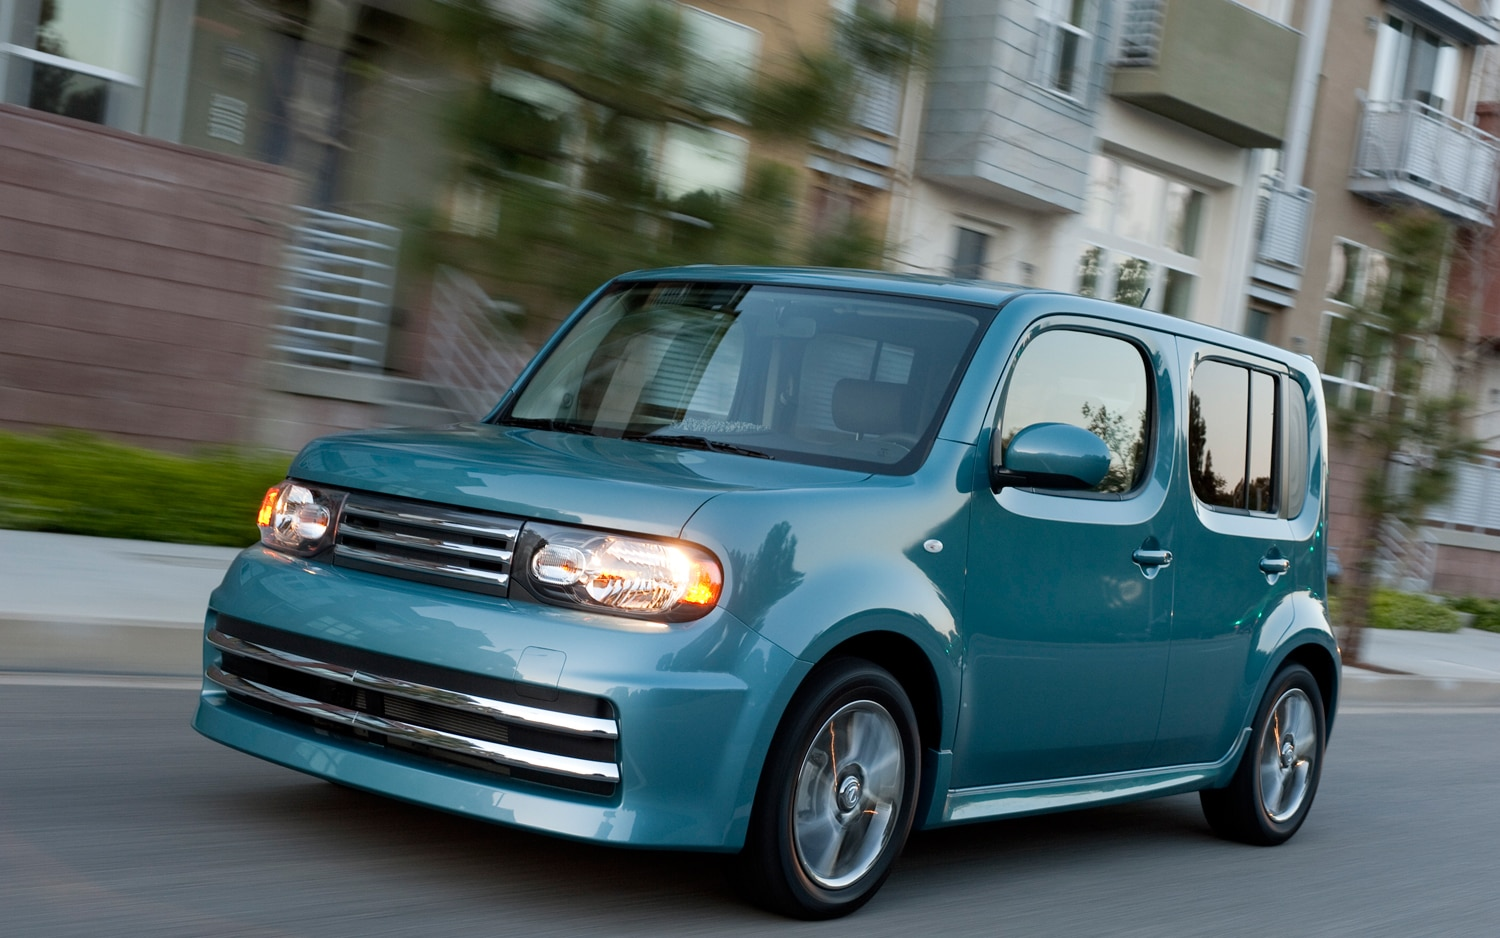 2011 nissan cube 1 8s krom editors 39 notebook automobile magazine. Black Bedroom Furniture Sets. Home Design Ideas